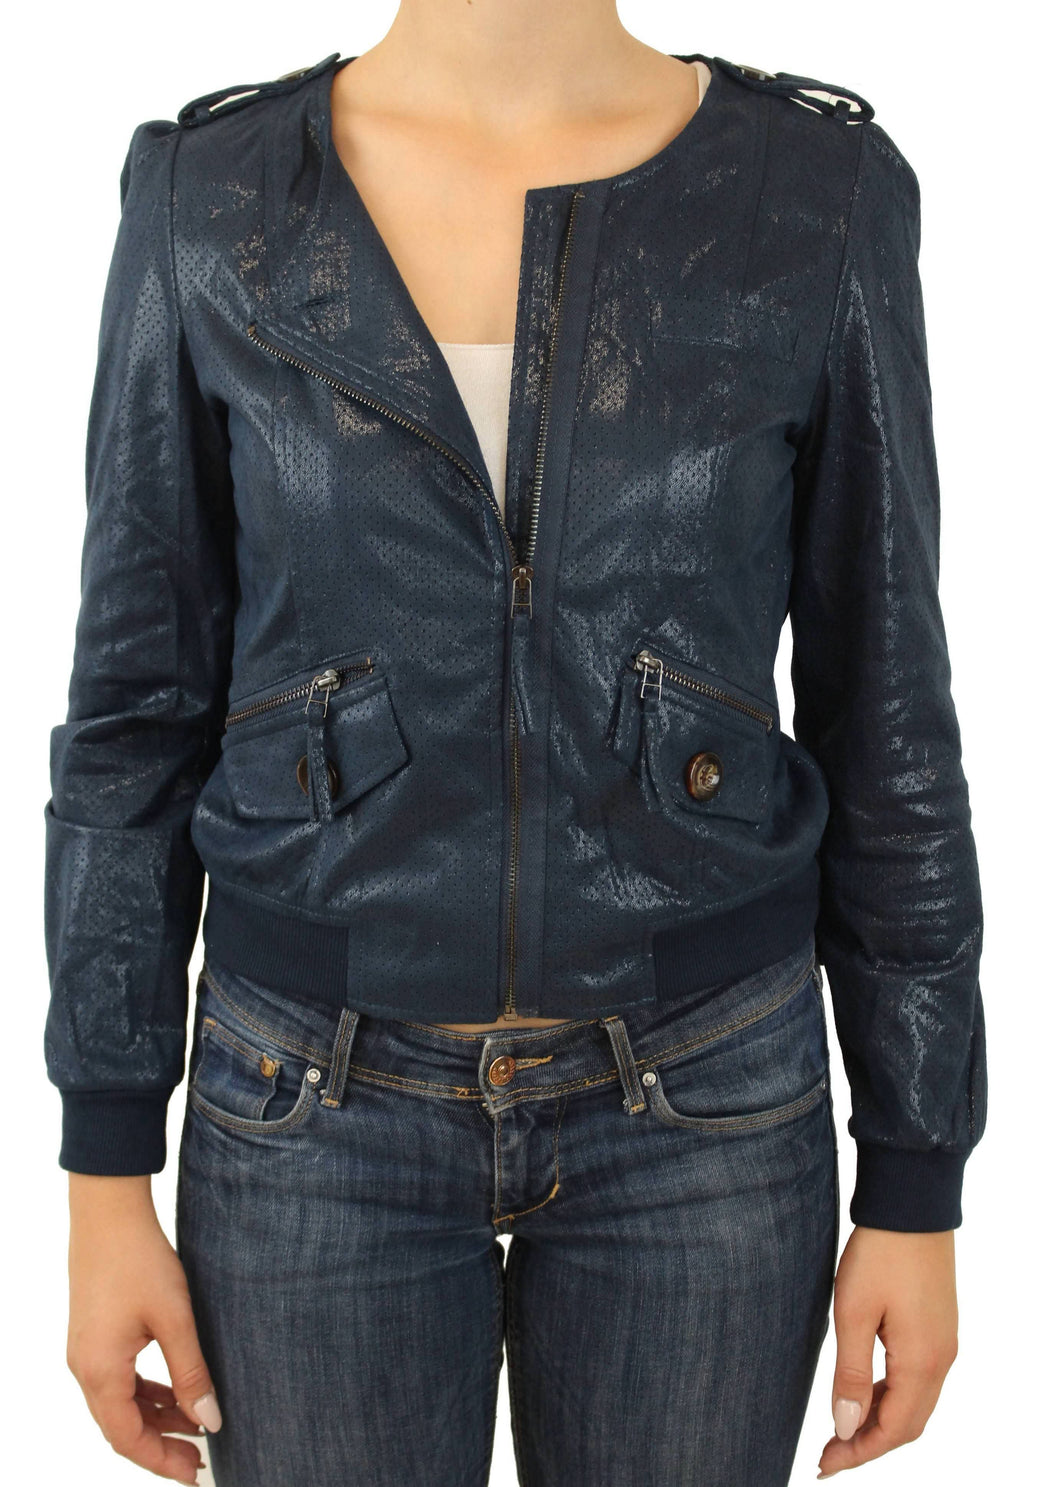 Molly Bracken Damenjacke